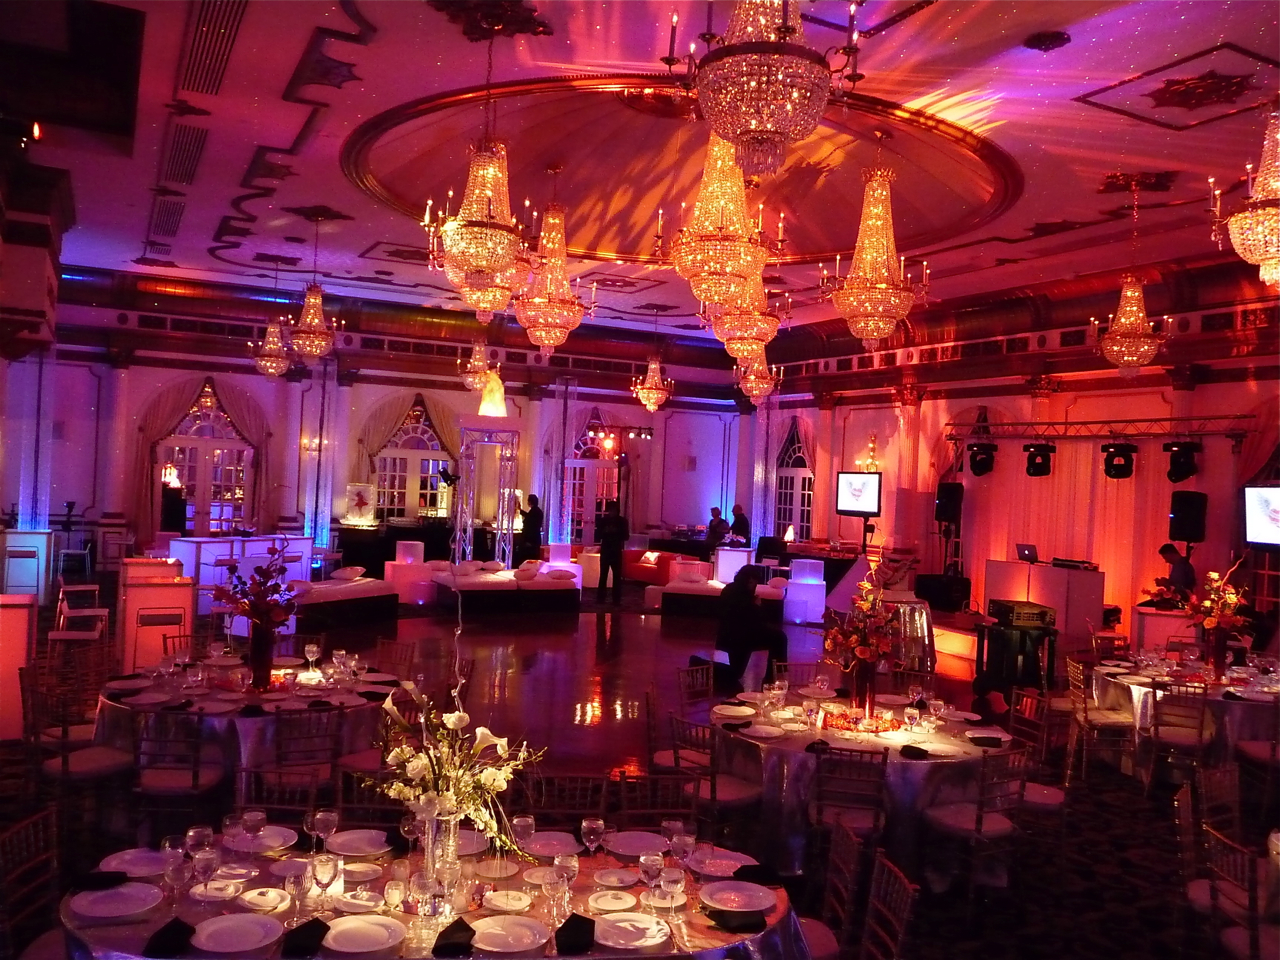 Fire and Ice decor and lighting by Eggsotic Events • Crystal Plaza, Livingston NJ  • Photography by Egil Matiss